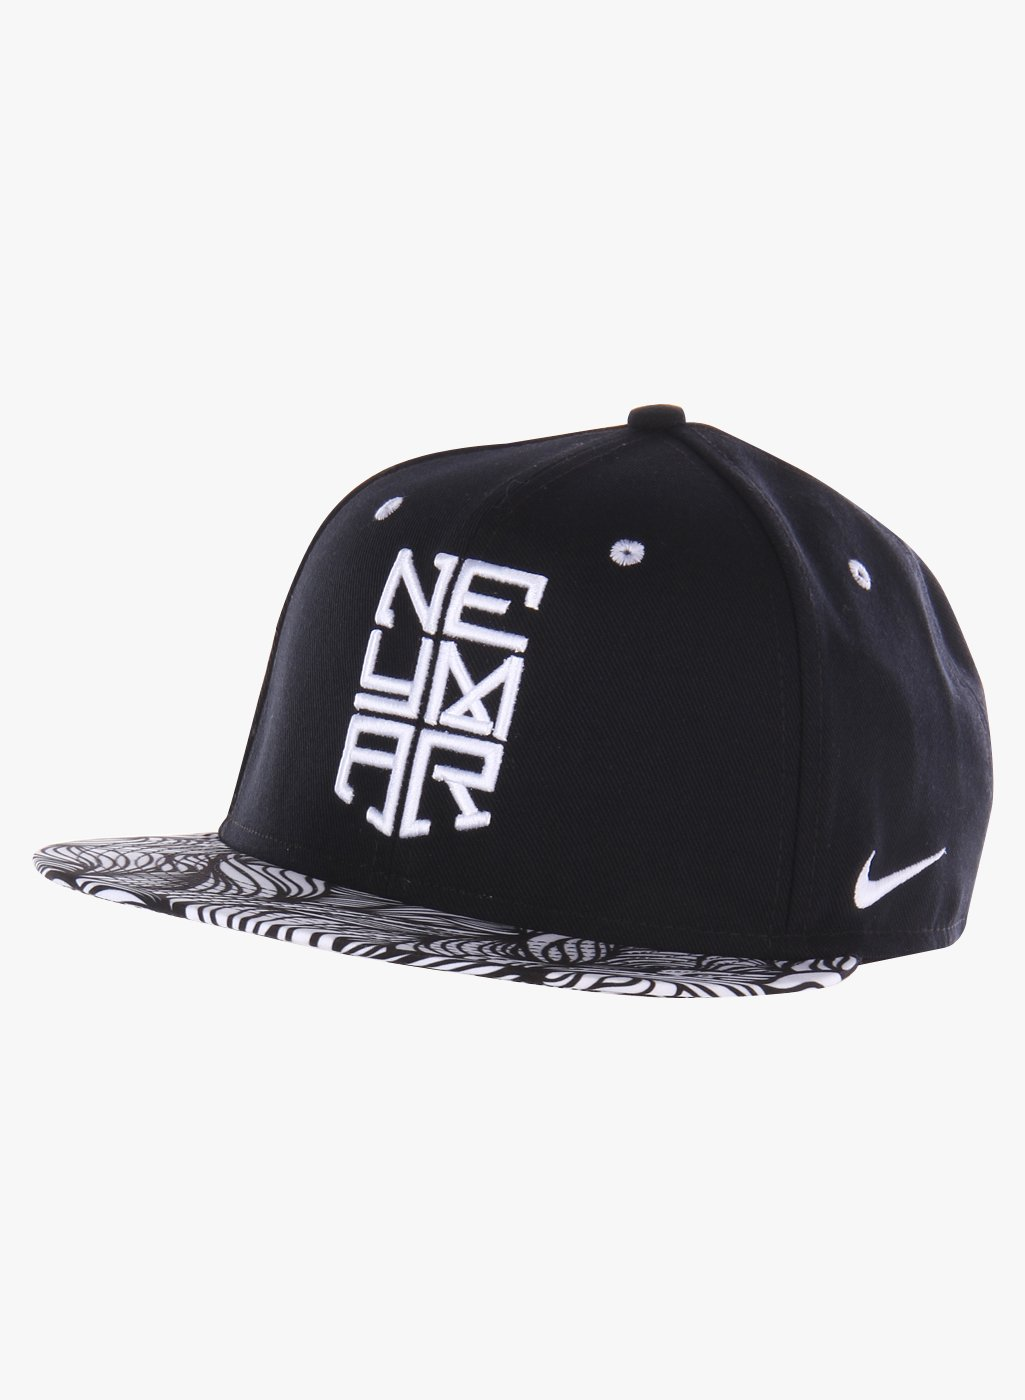 a488a82d087 Buy Nike Neymar True Cap Online at Low Prices in India - Amazon.in